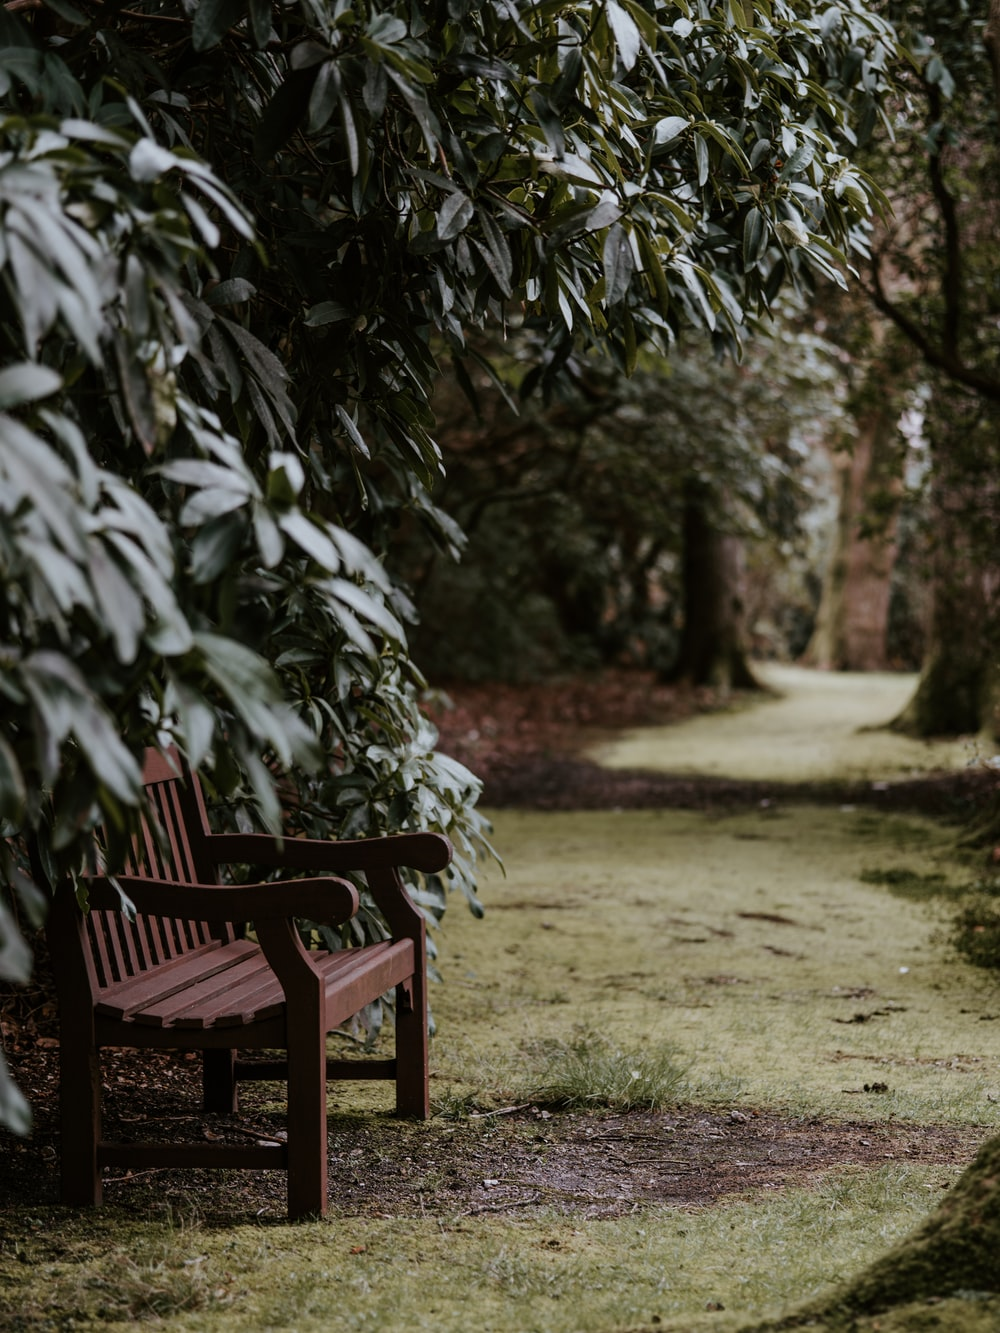 brown wooden bench chair in the park